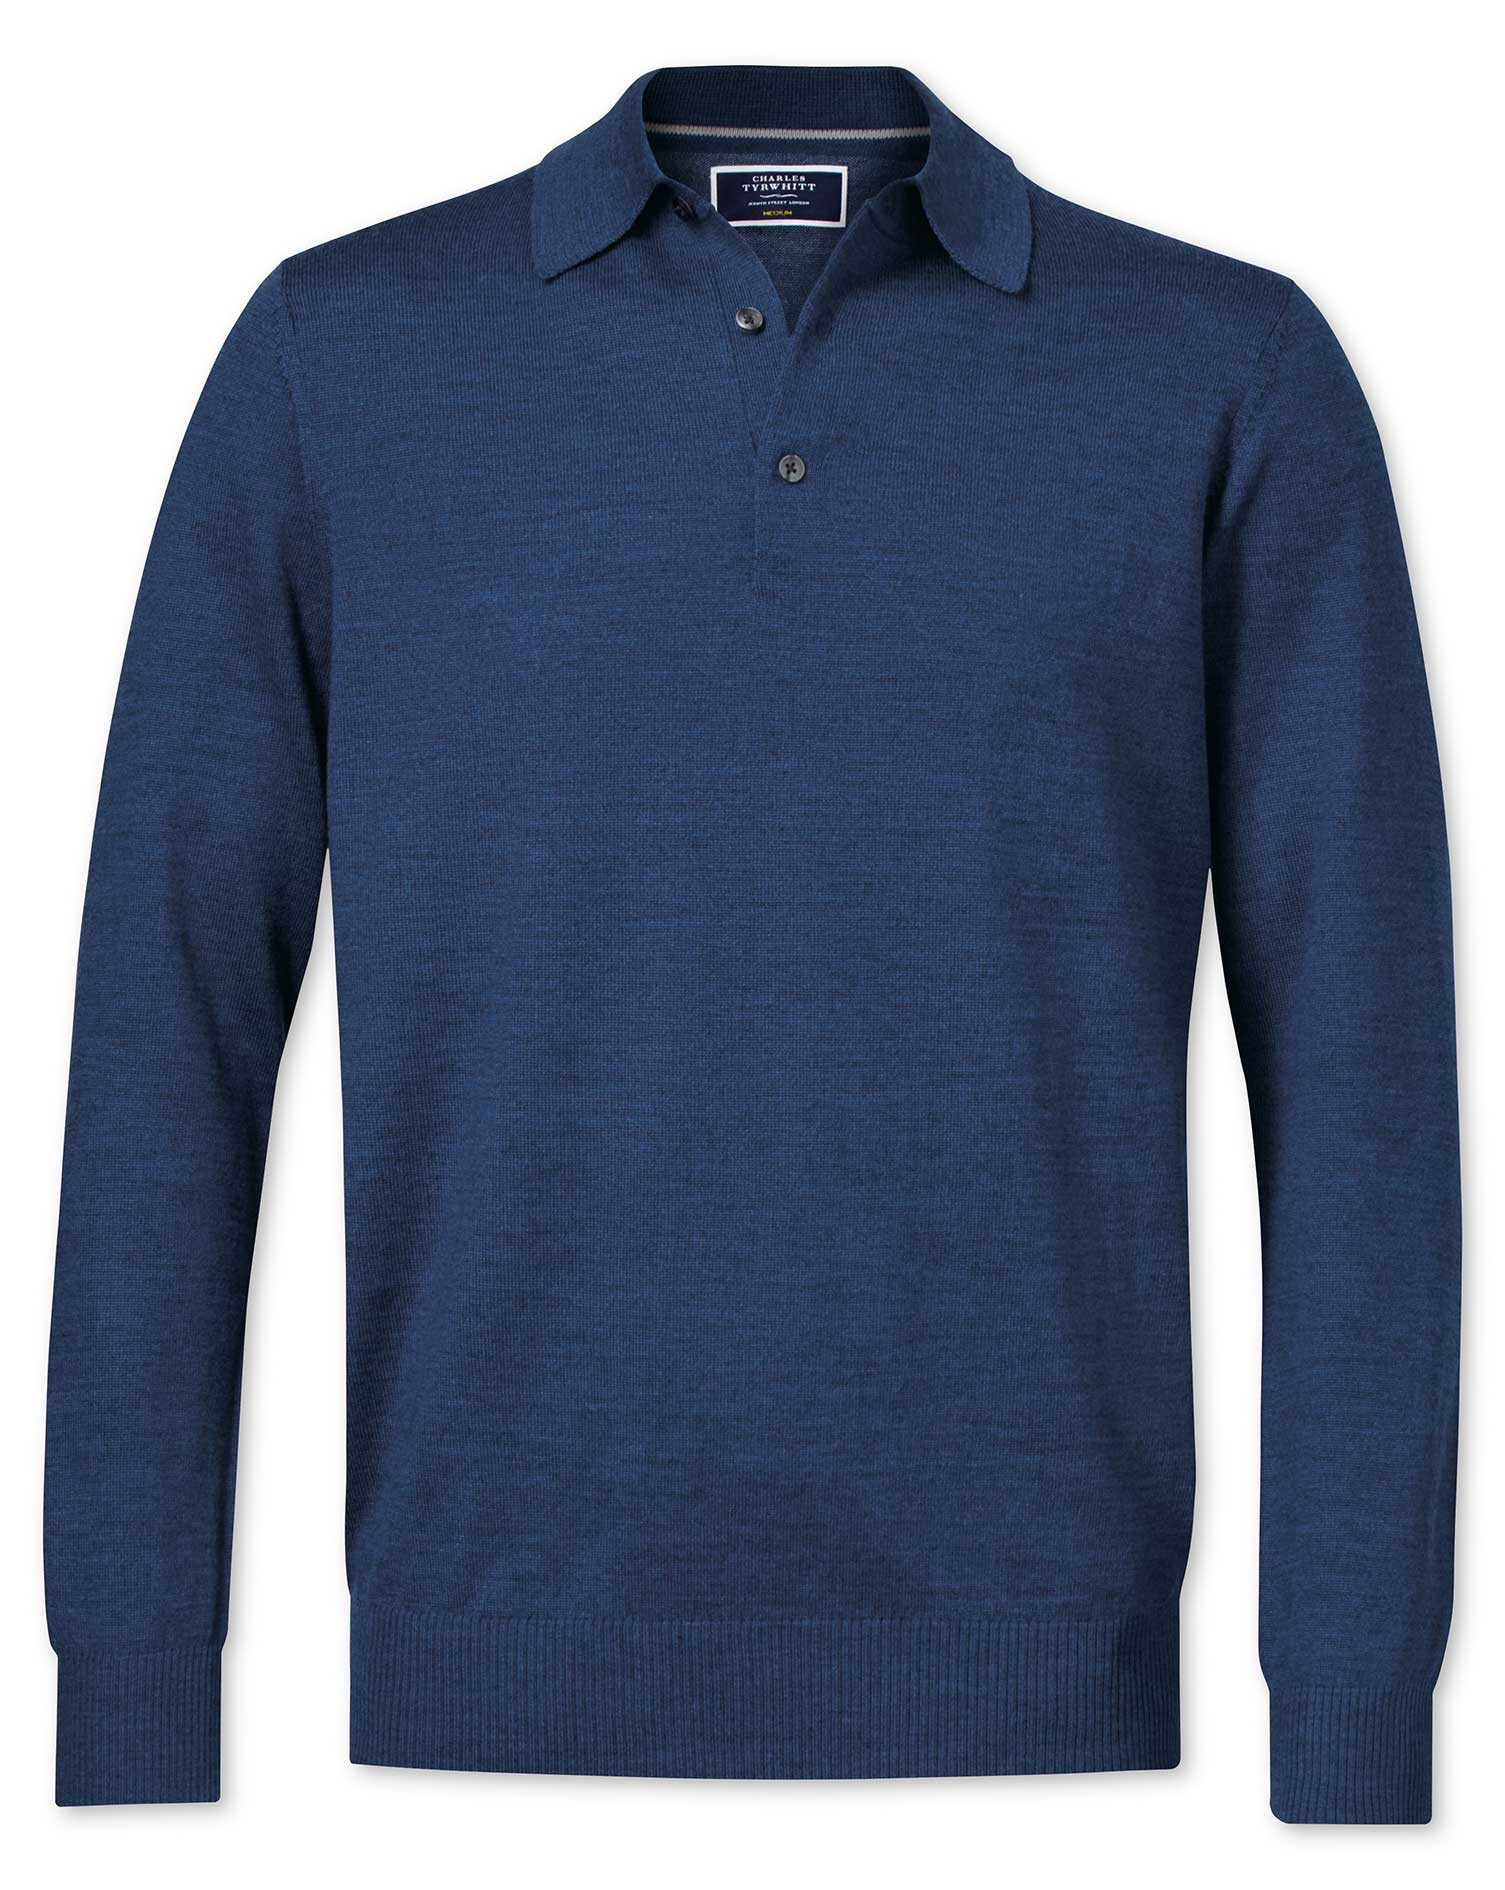 Mid Blue Merino Wool Polo Neck Jumper Size Large by Charles Tyrwhitt